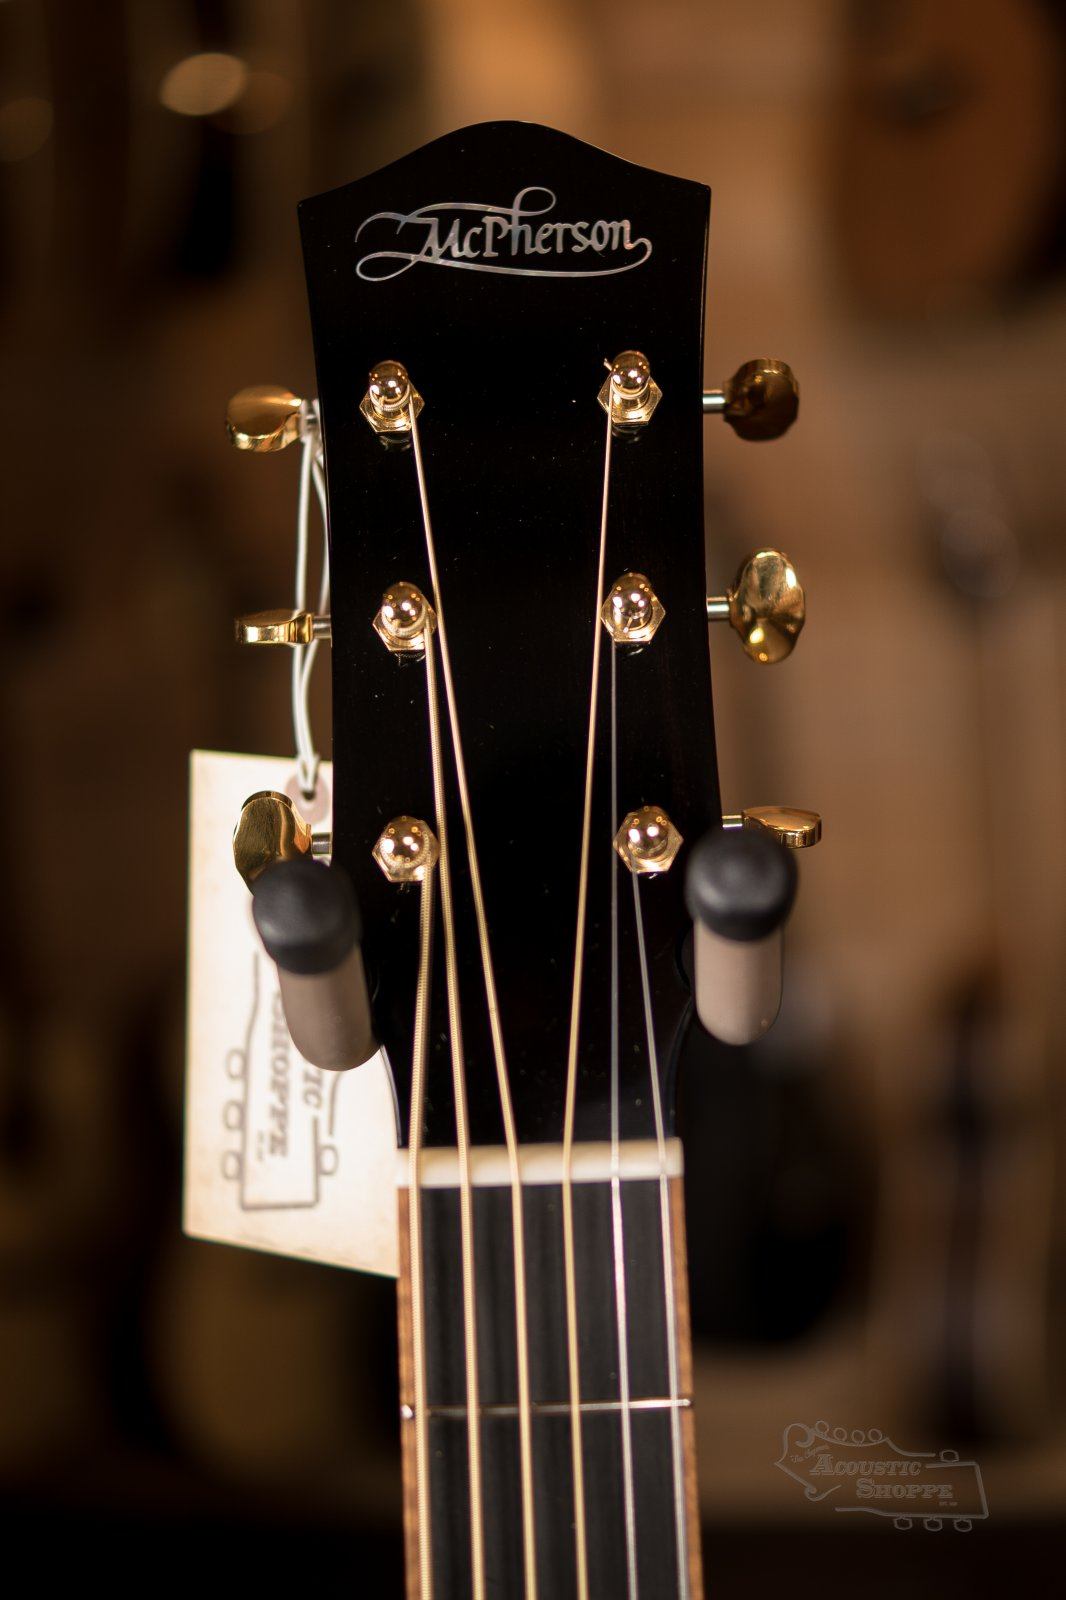 McPherson Camrielle 4.5 East Indian Rosewood/Sitka Spruce #2511